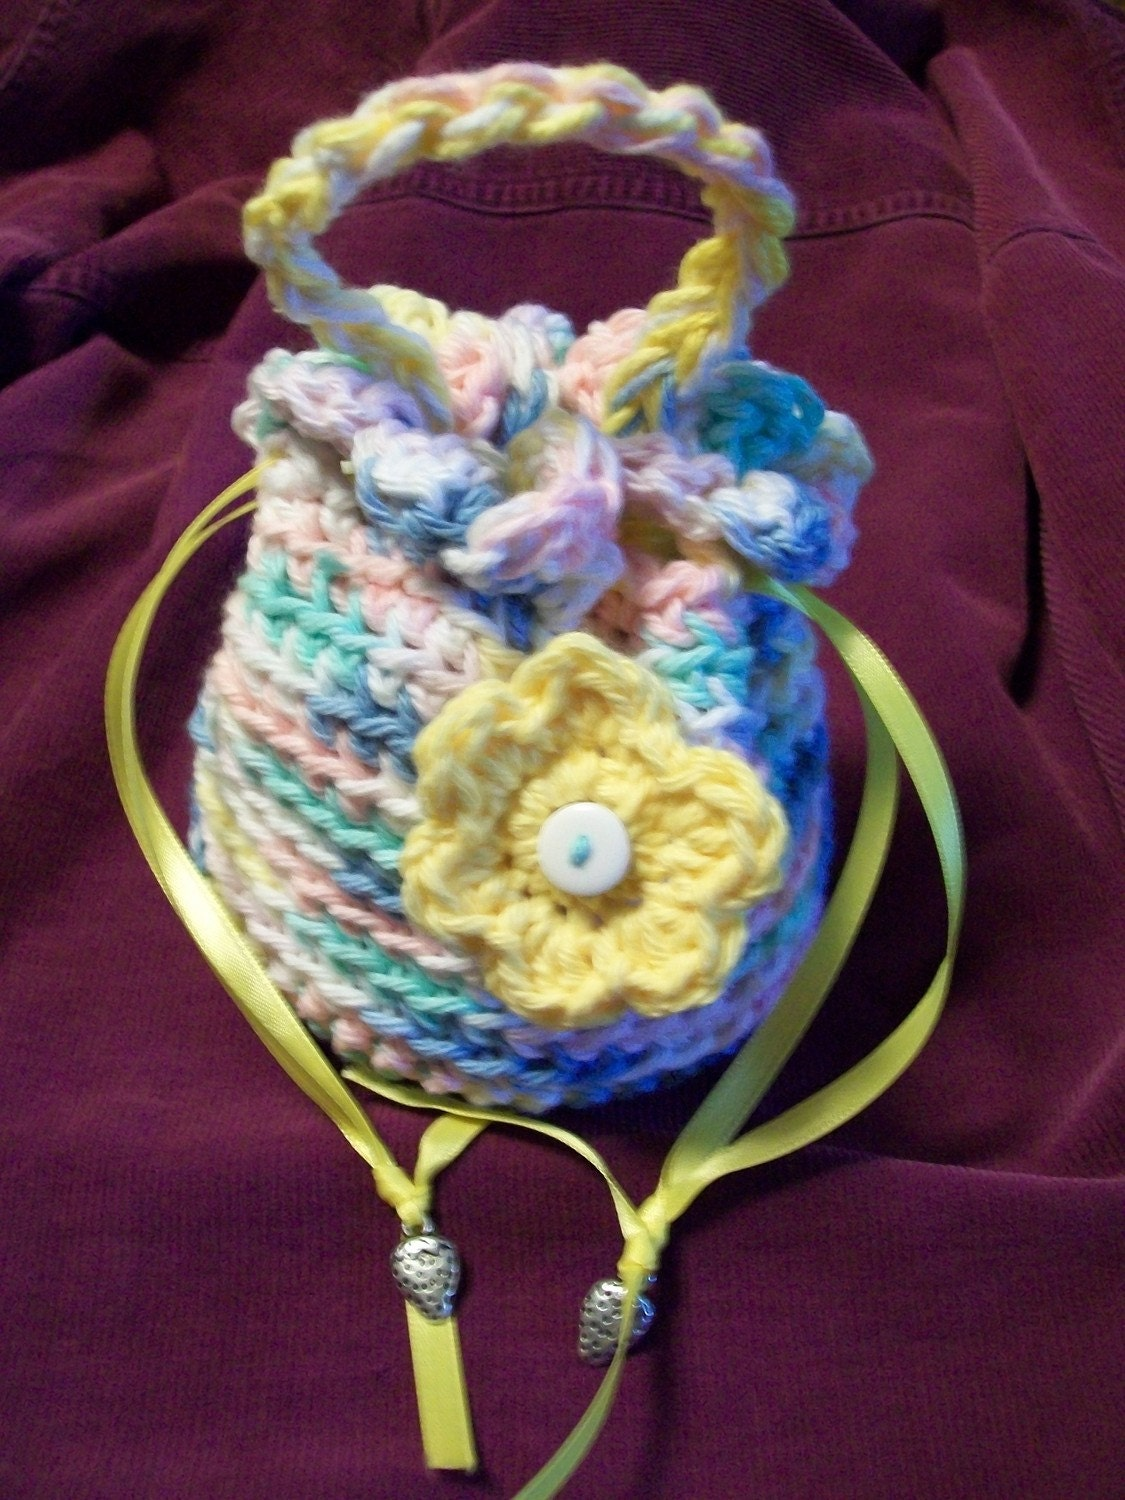 Girl's drawstring crocheted purse in pastel colors with flower.